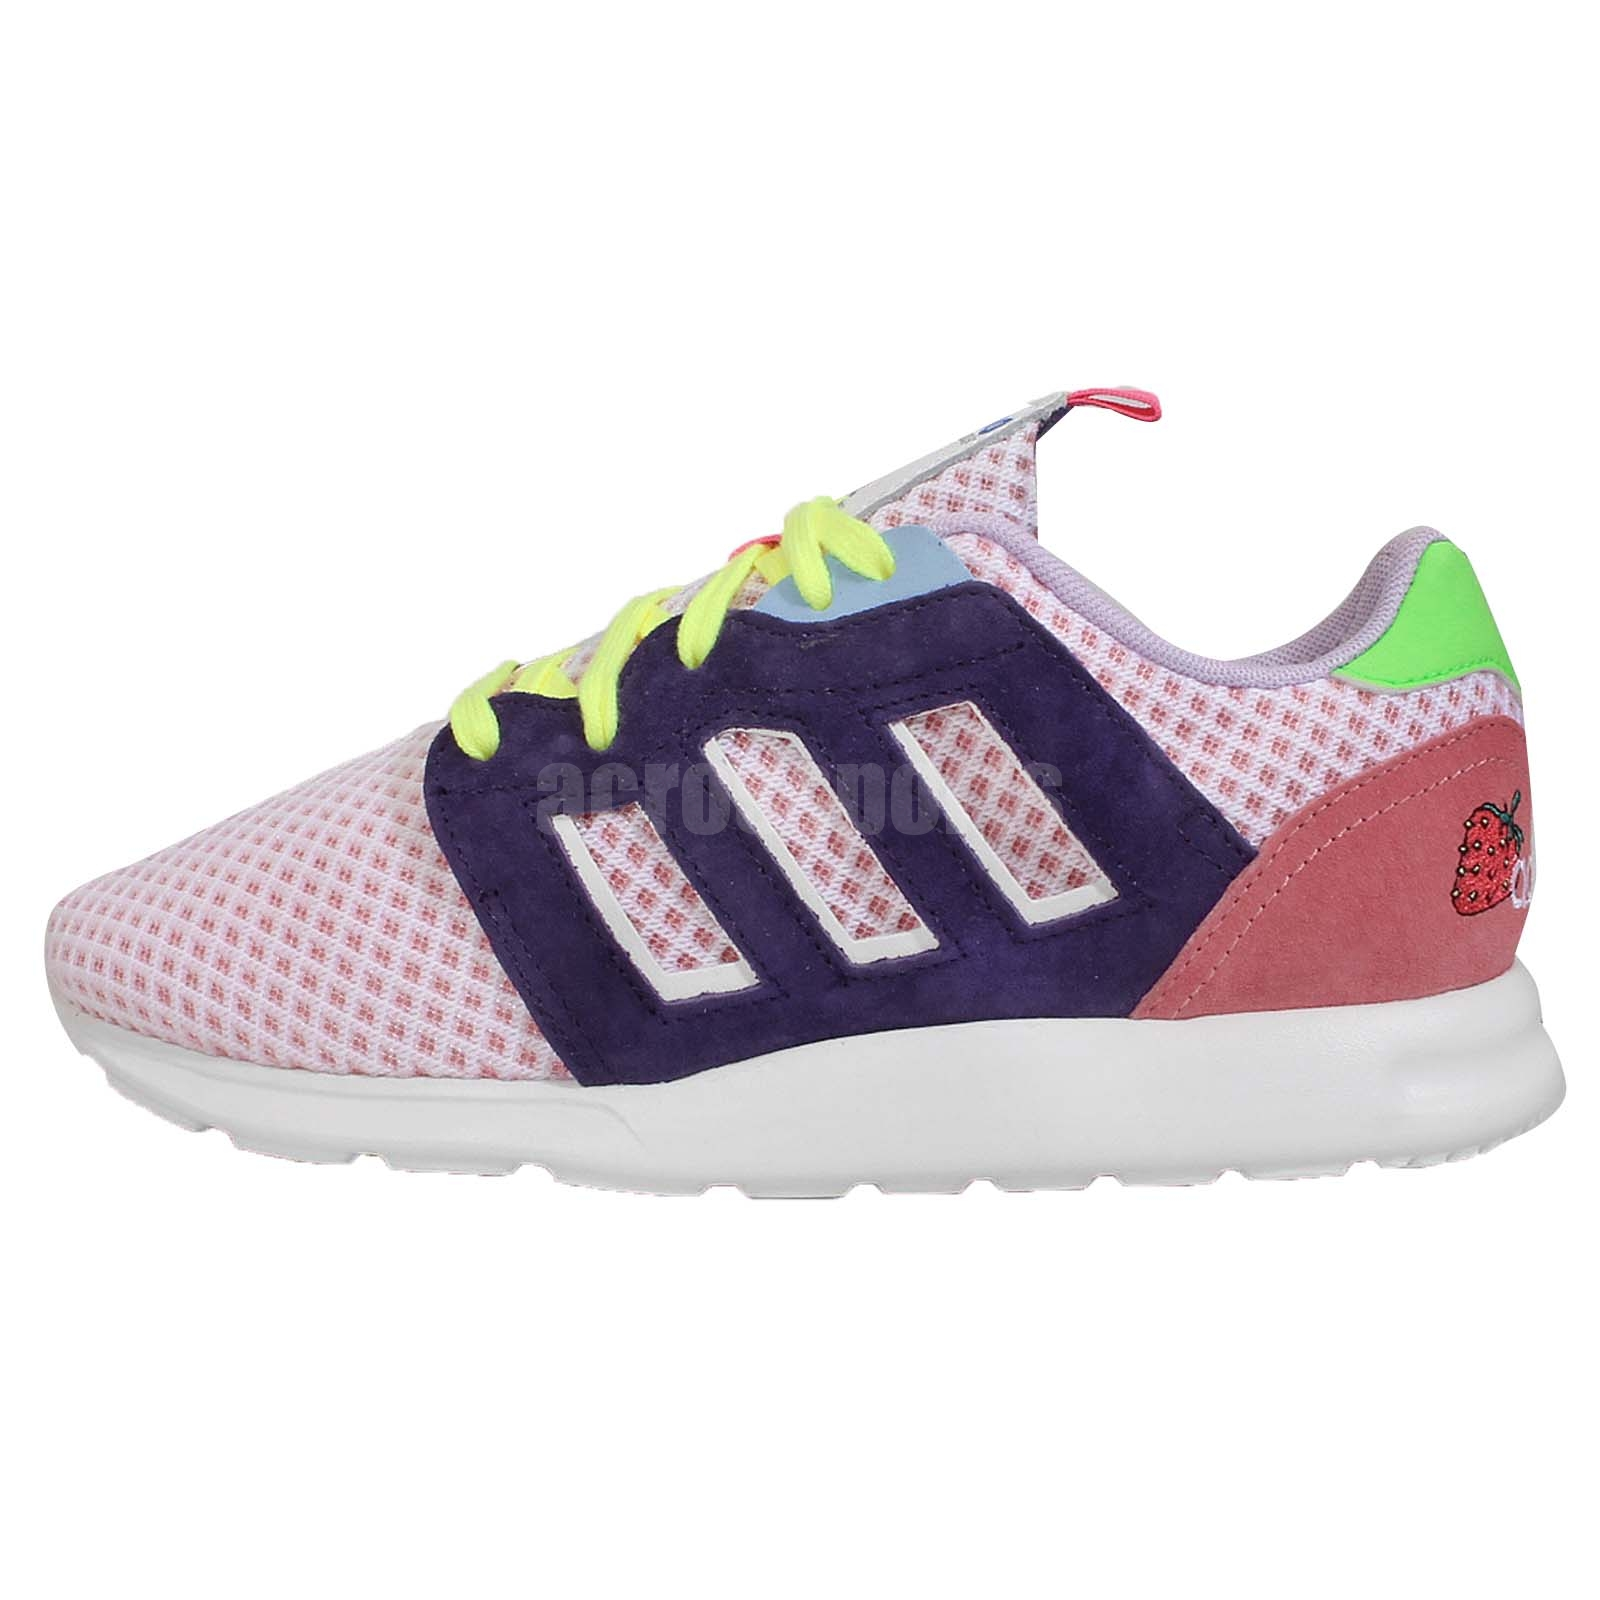 buy adidas zx 500 kids pink off51 discounted. Black Bedroom Furniture Sets. Home Design Ideas